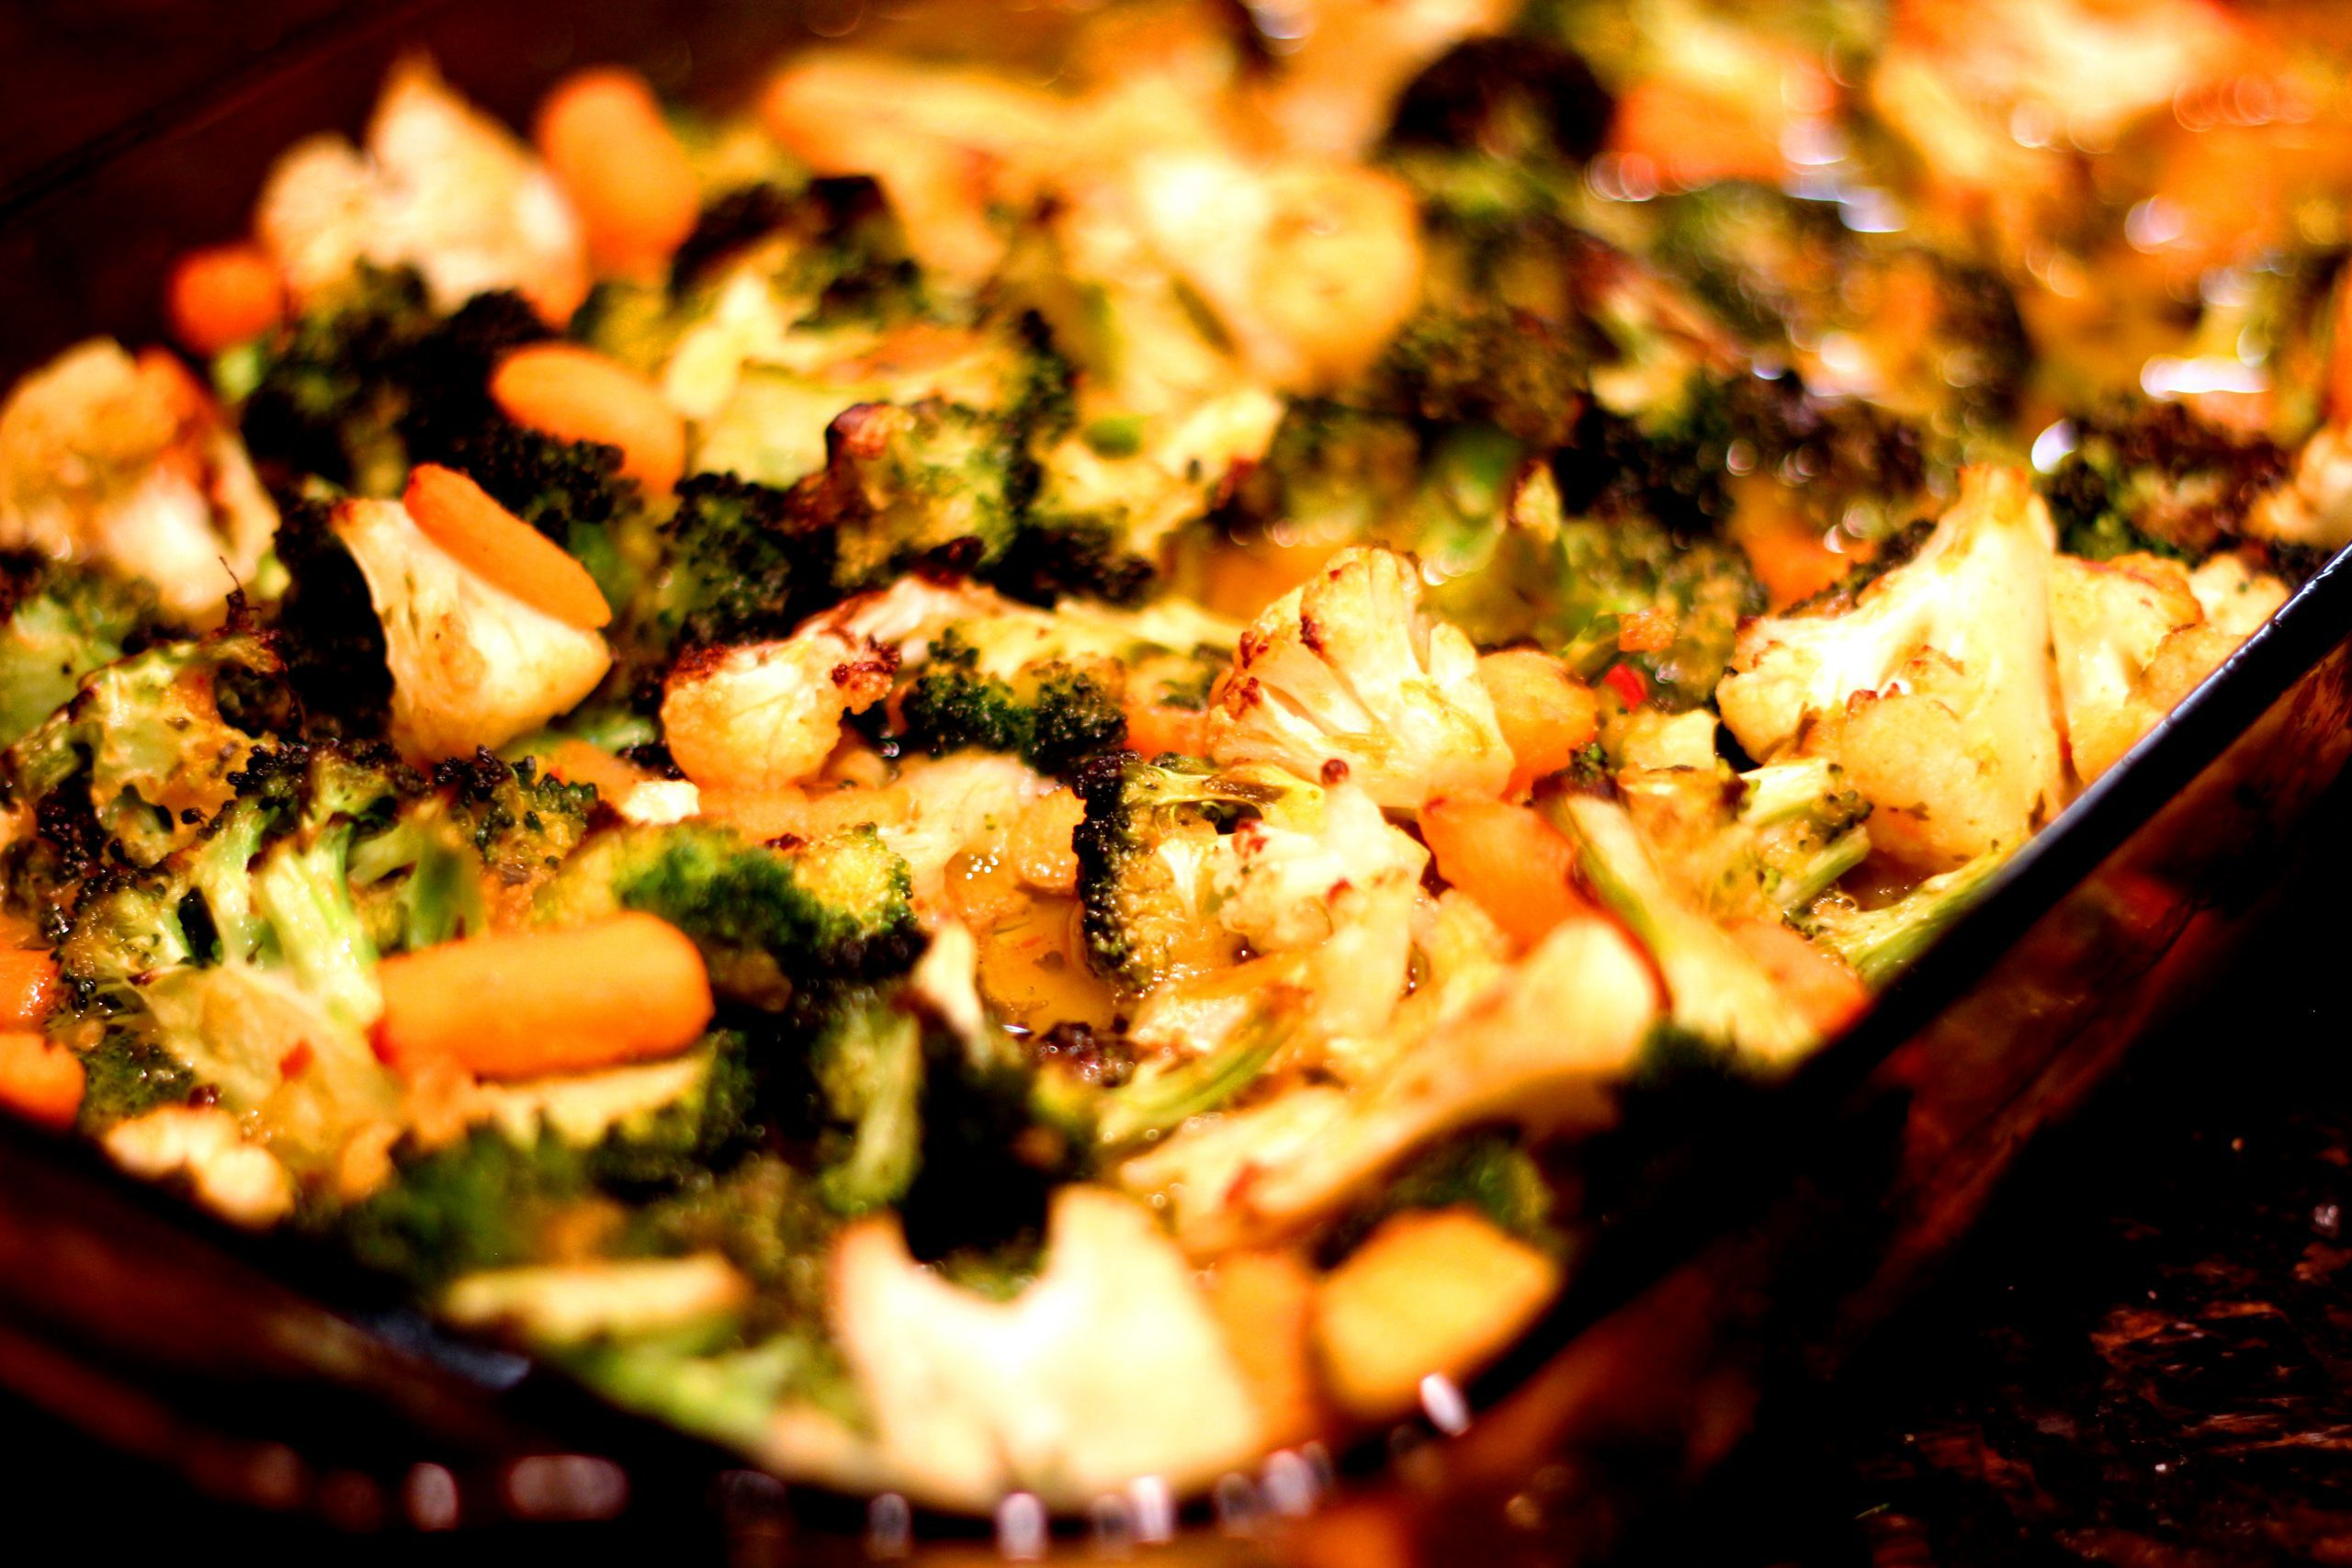 Roasted Vegetables with Peruvian Blood Orange Sauce